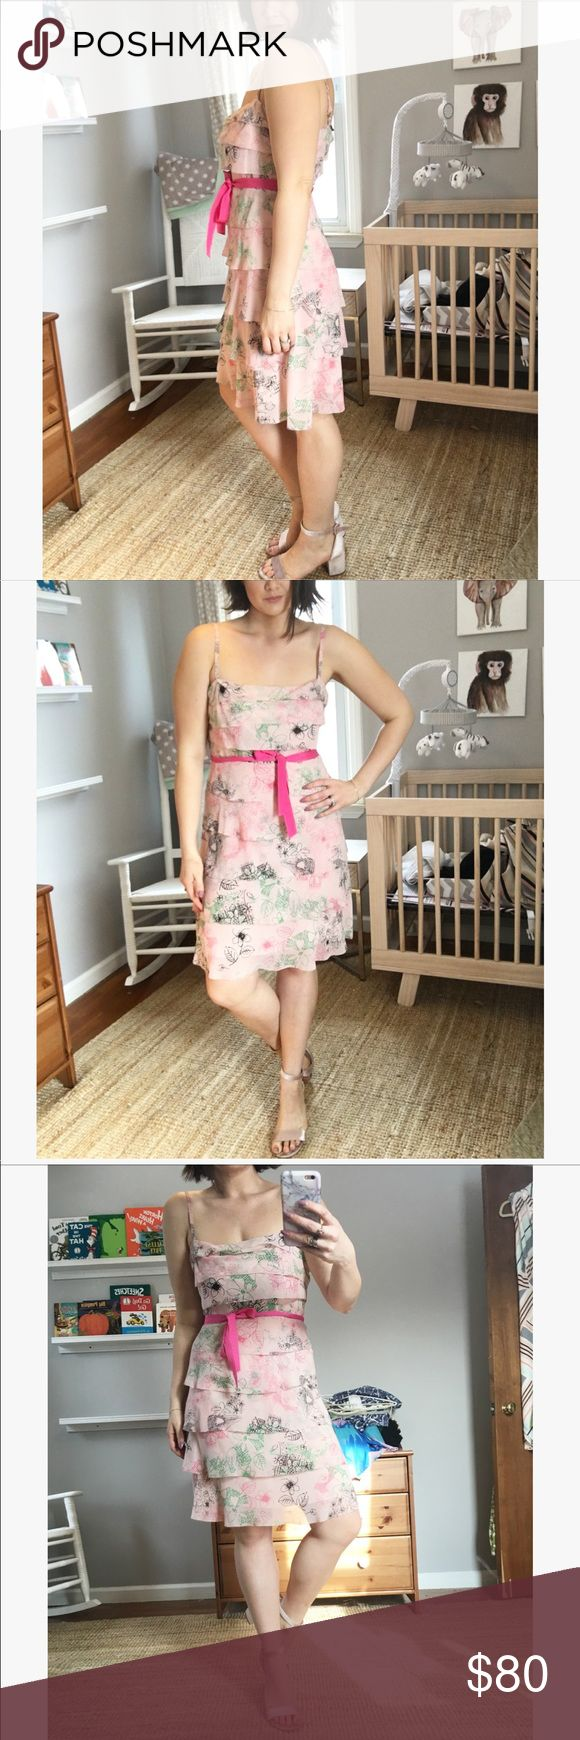 BCBG Maxazria ruffled tiered 100% silk pink dress Absolutely beautiful 100% silk light pink dress from BCBG Maxazria. This dress is so light and elegant! Would be perfect for a wedding shower, wedding, Easter, or any spring event. BCBGMaxAzria Dresses Wedding